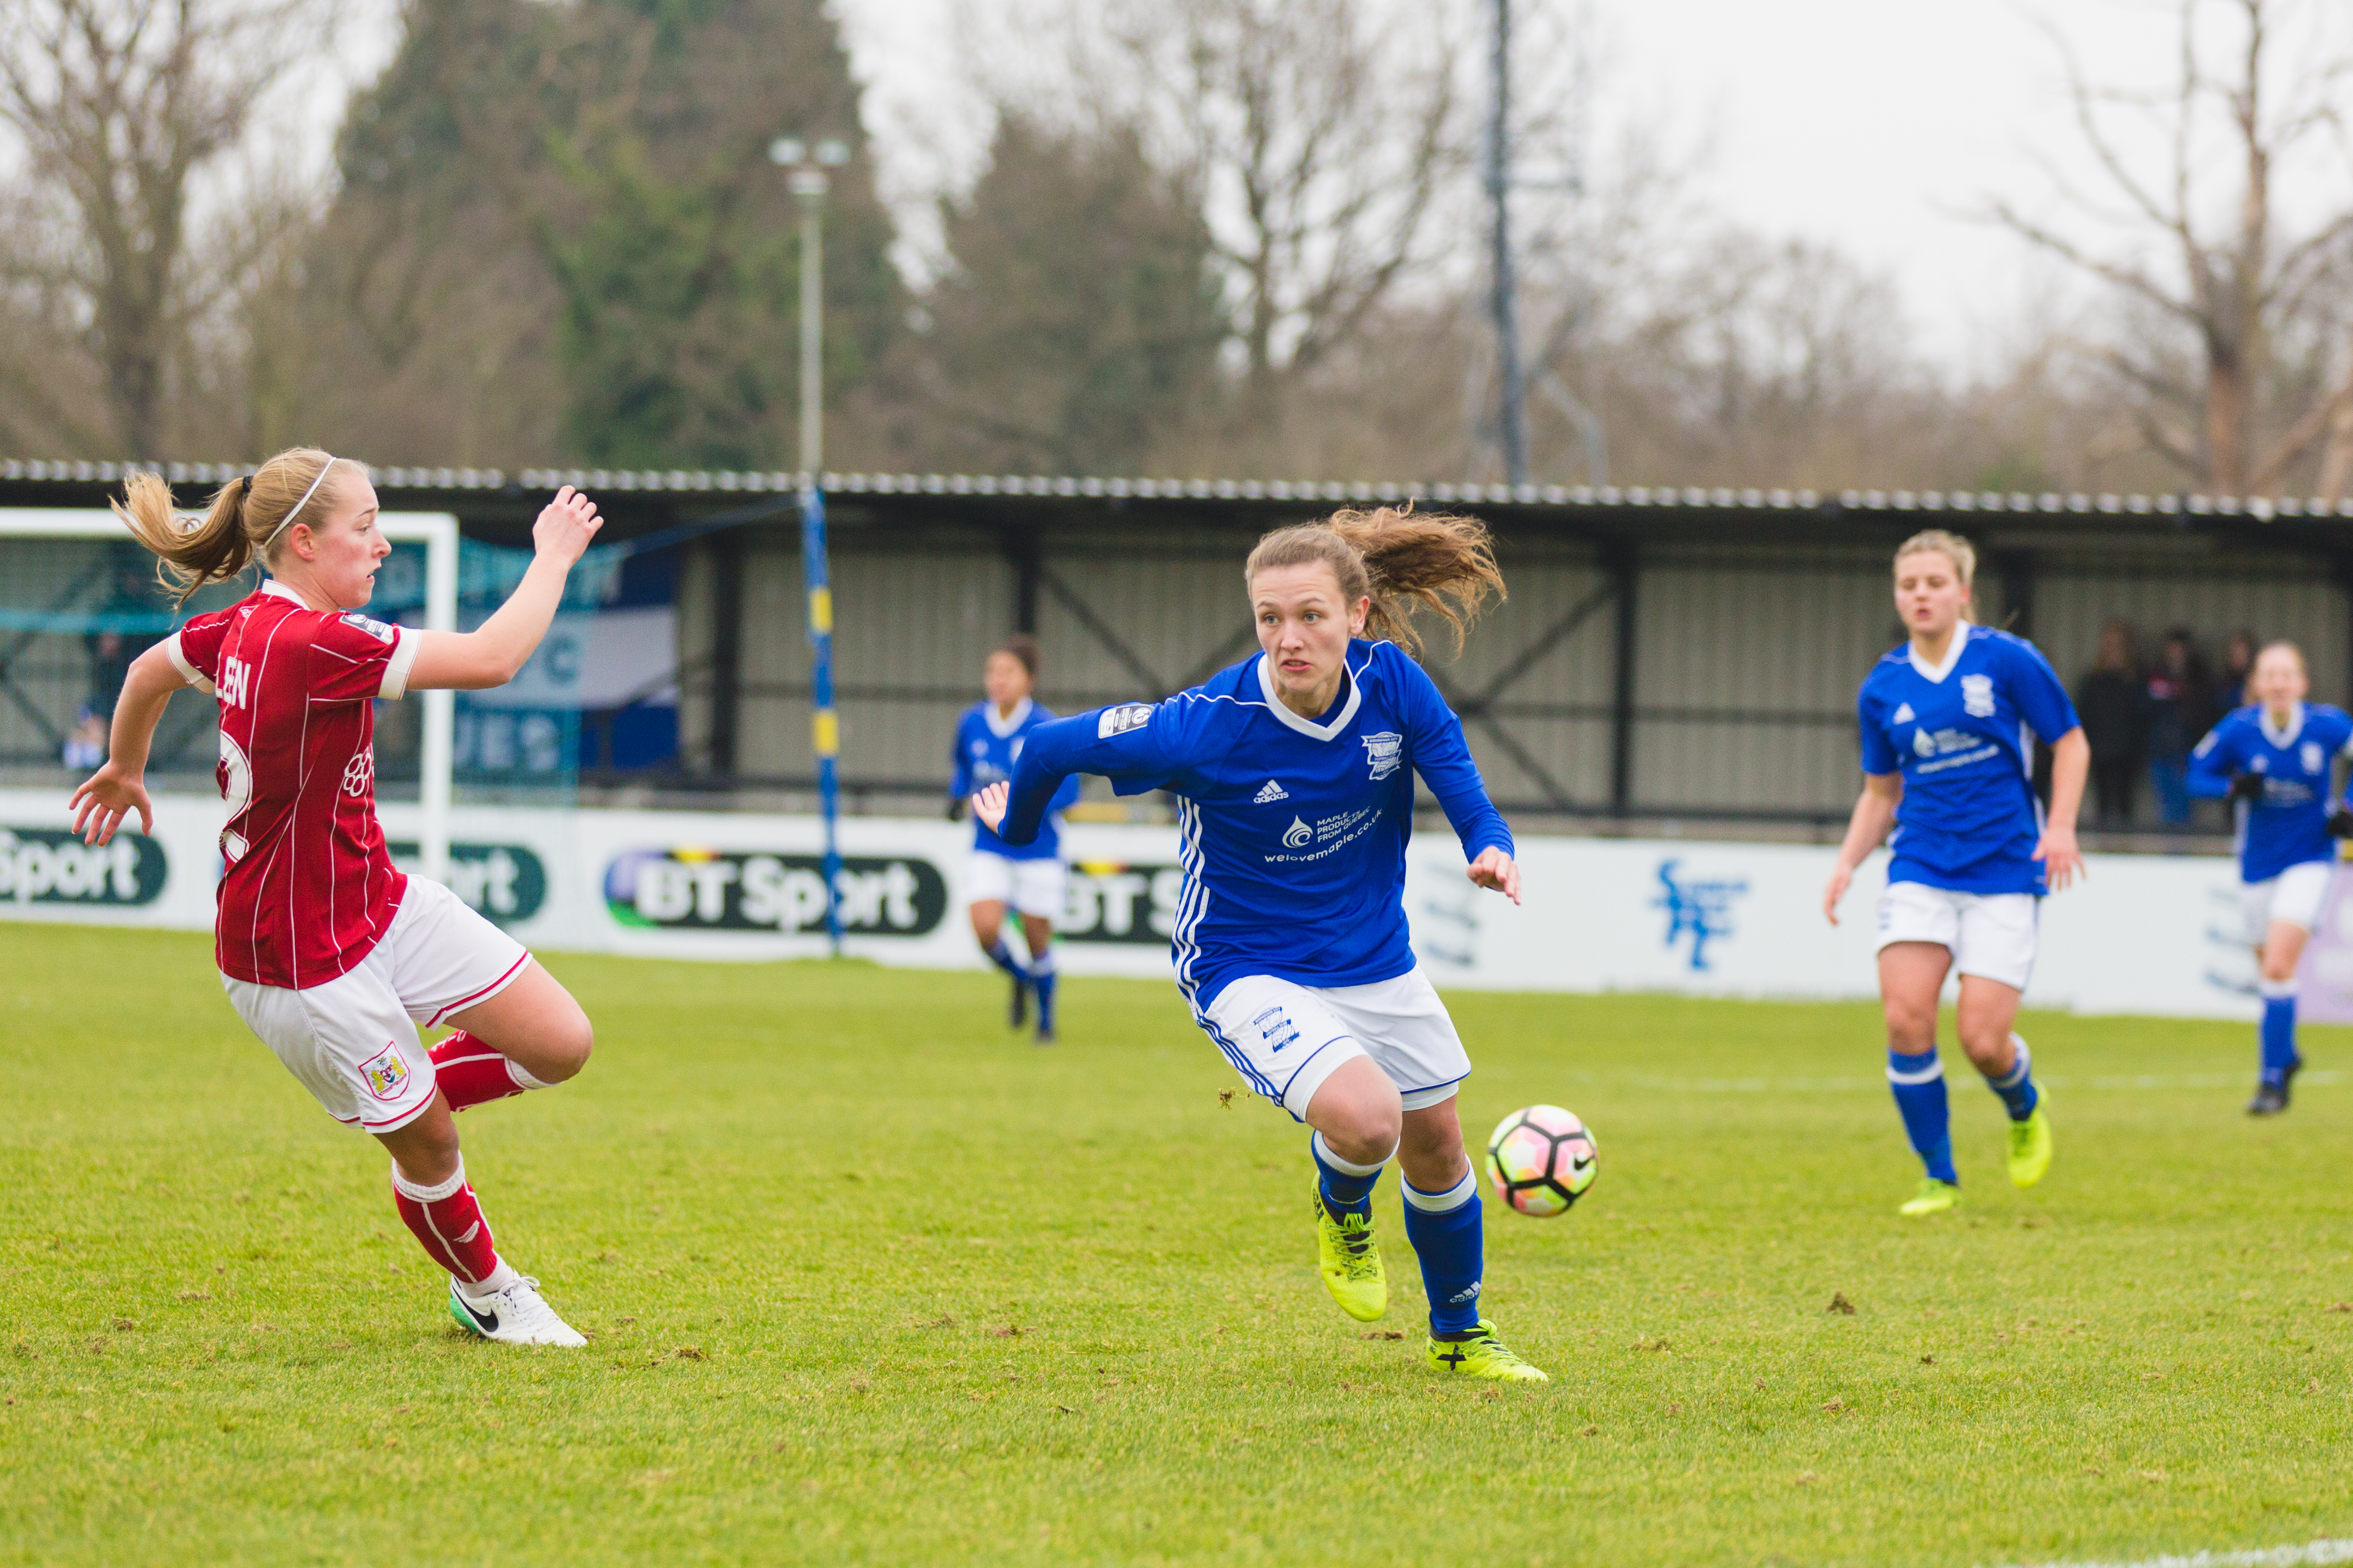 Birmingham City Ladies FC player running with the ball